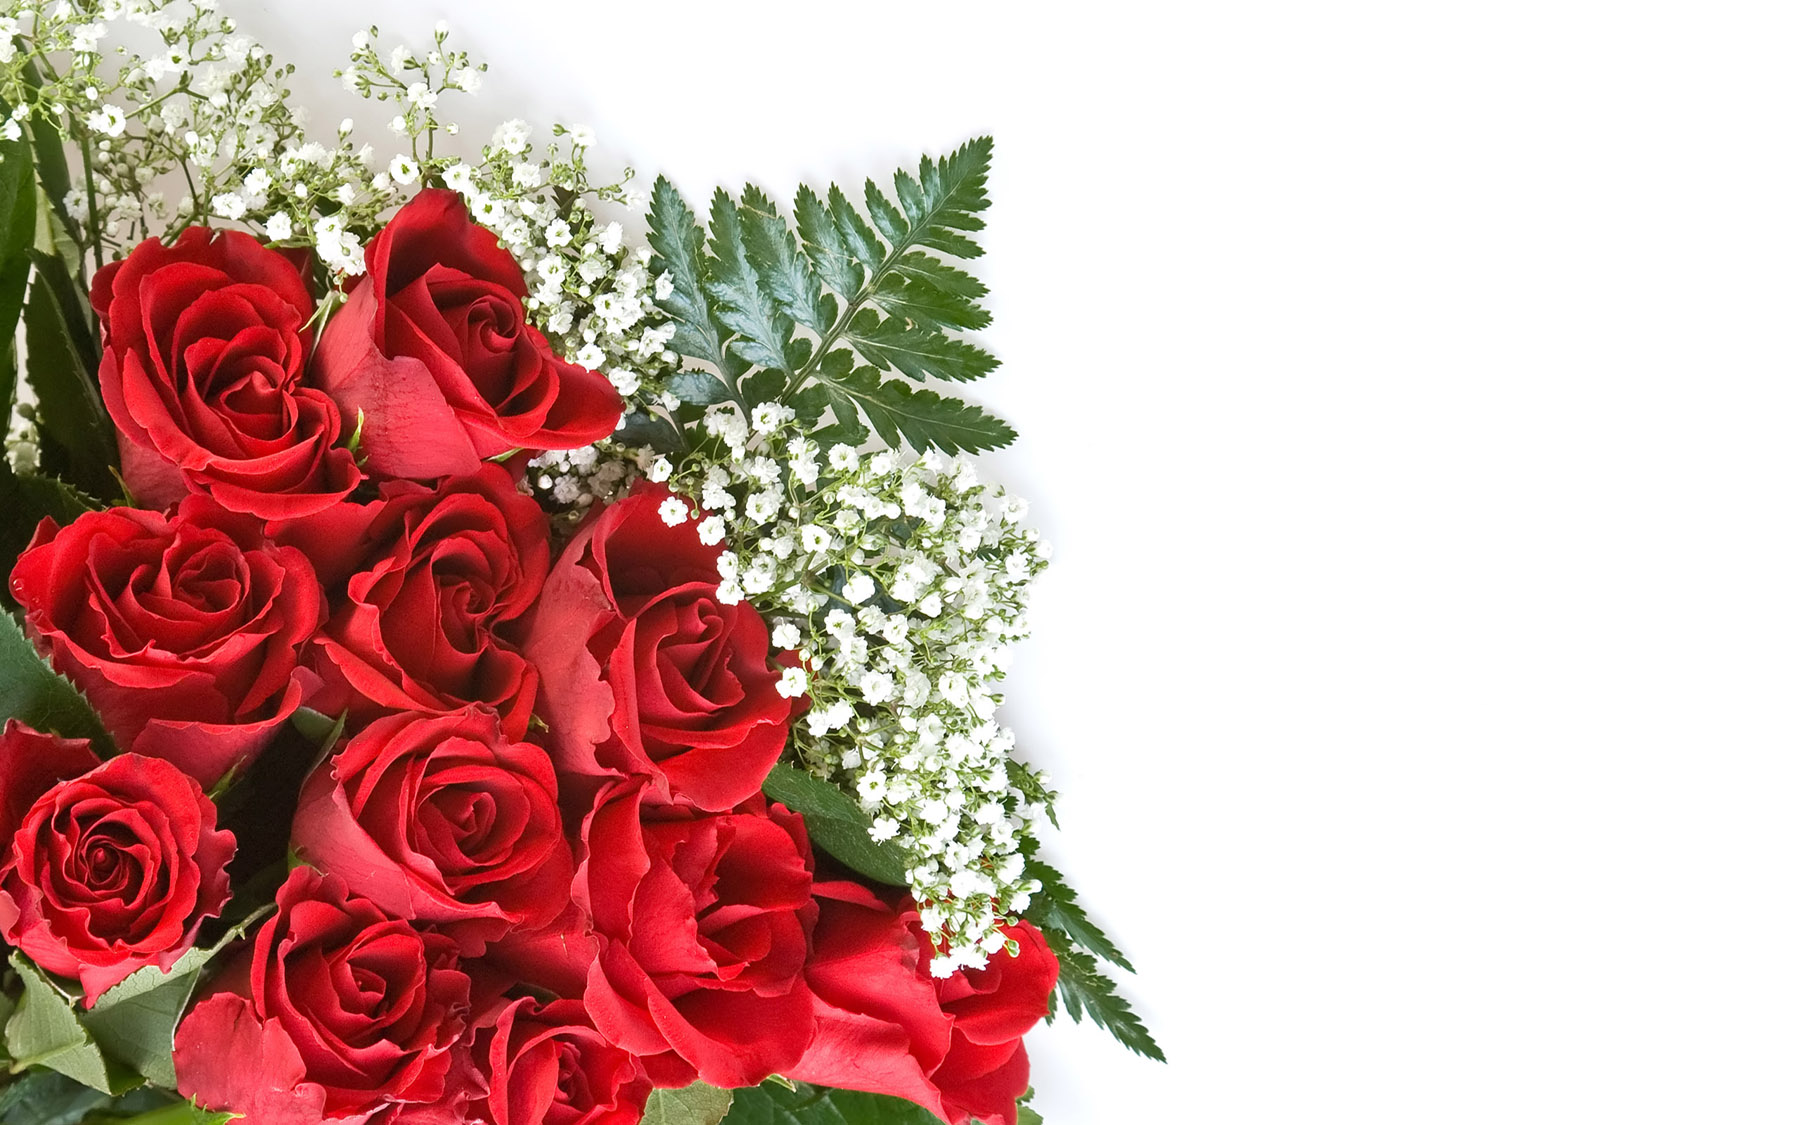 High-resolution photo roses 24983